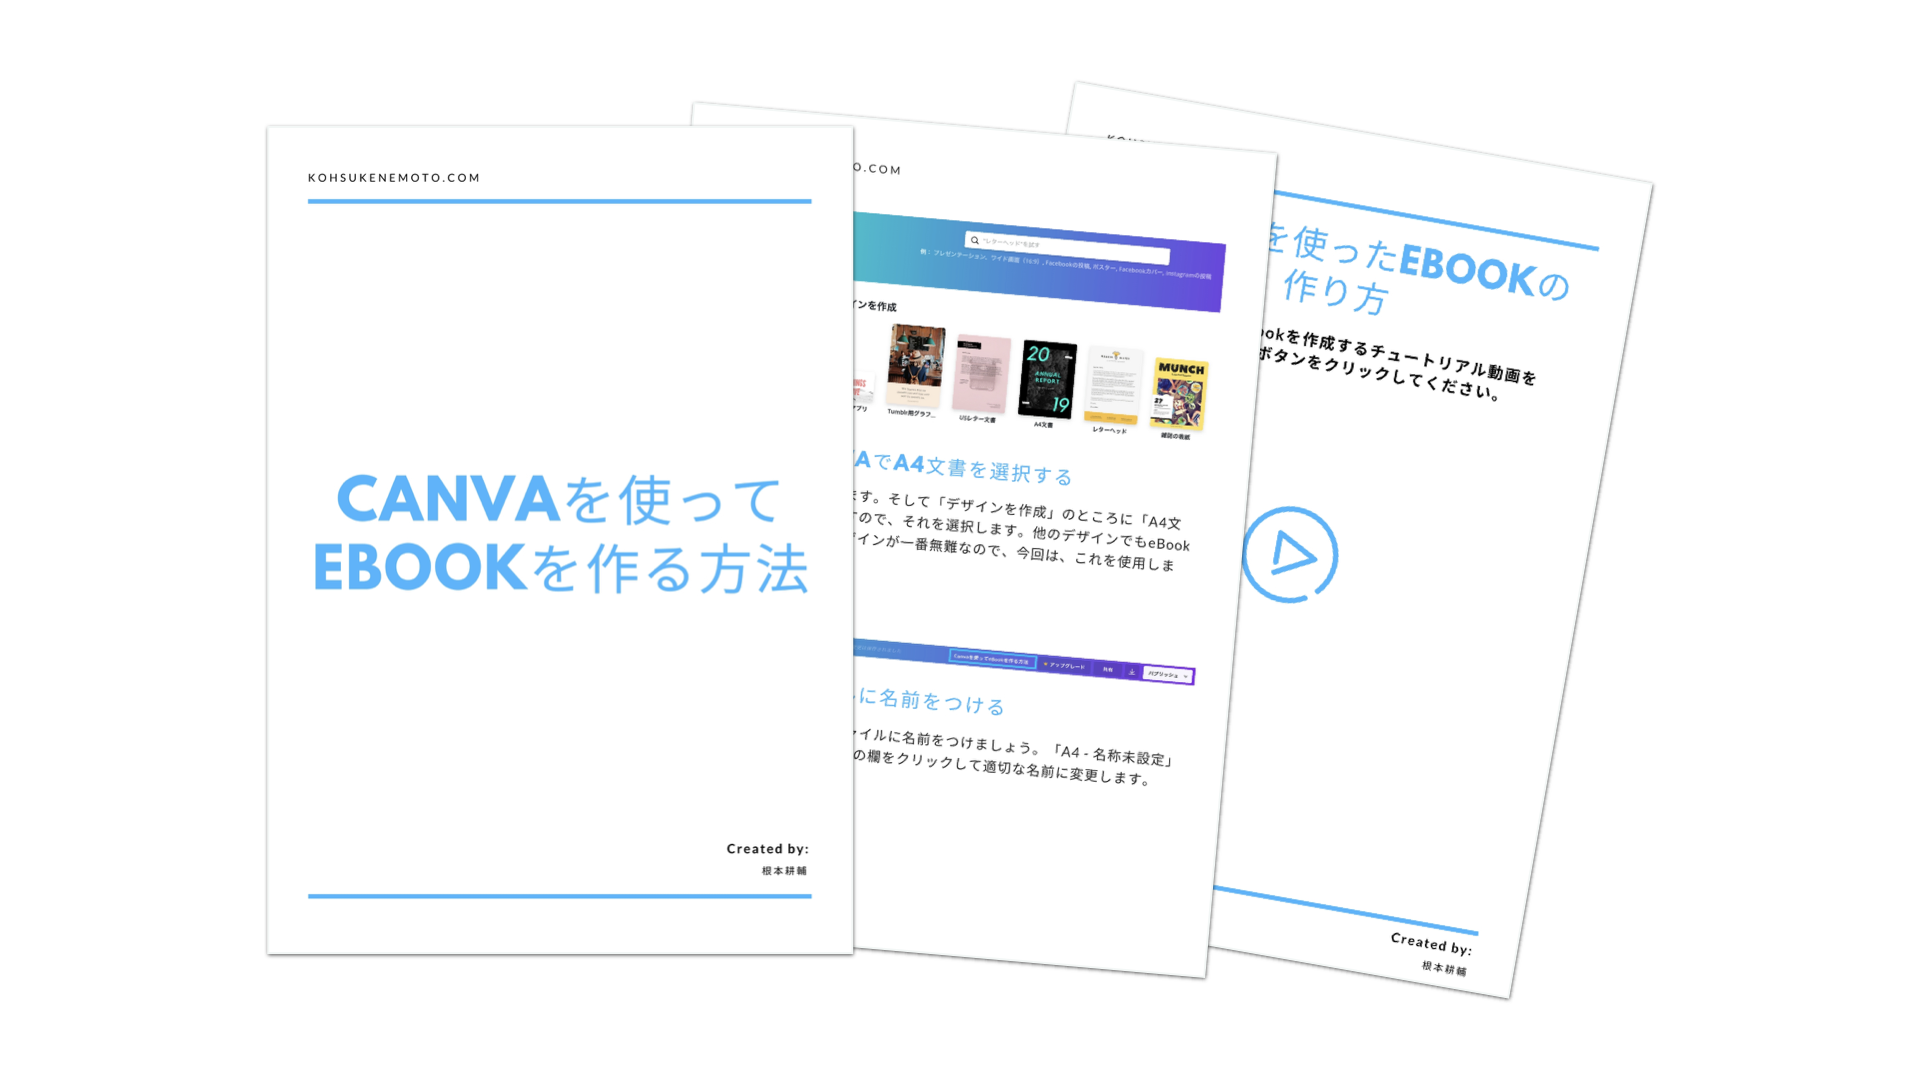 canvaでebookを作成する方法 モックアップ.001